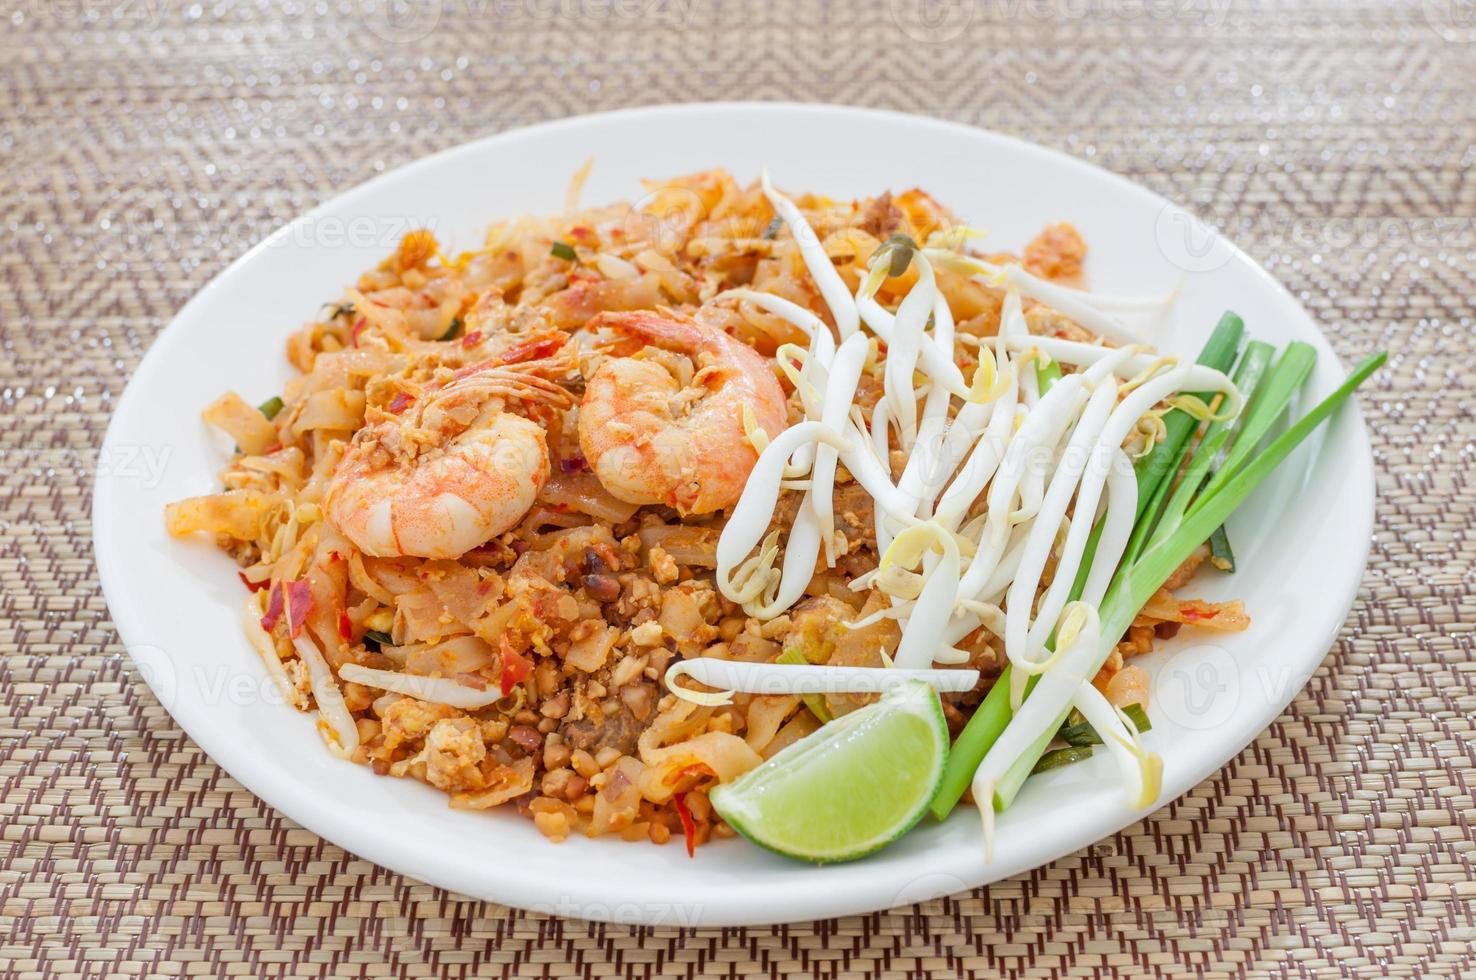 fried noodles thai style with prawns (pad thai) photo